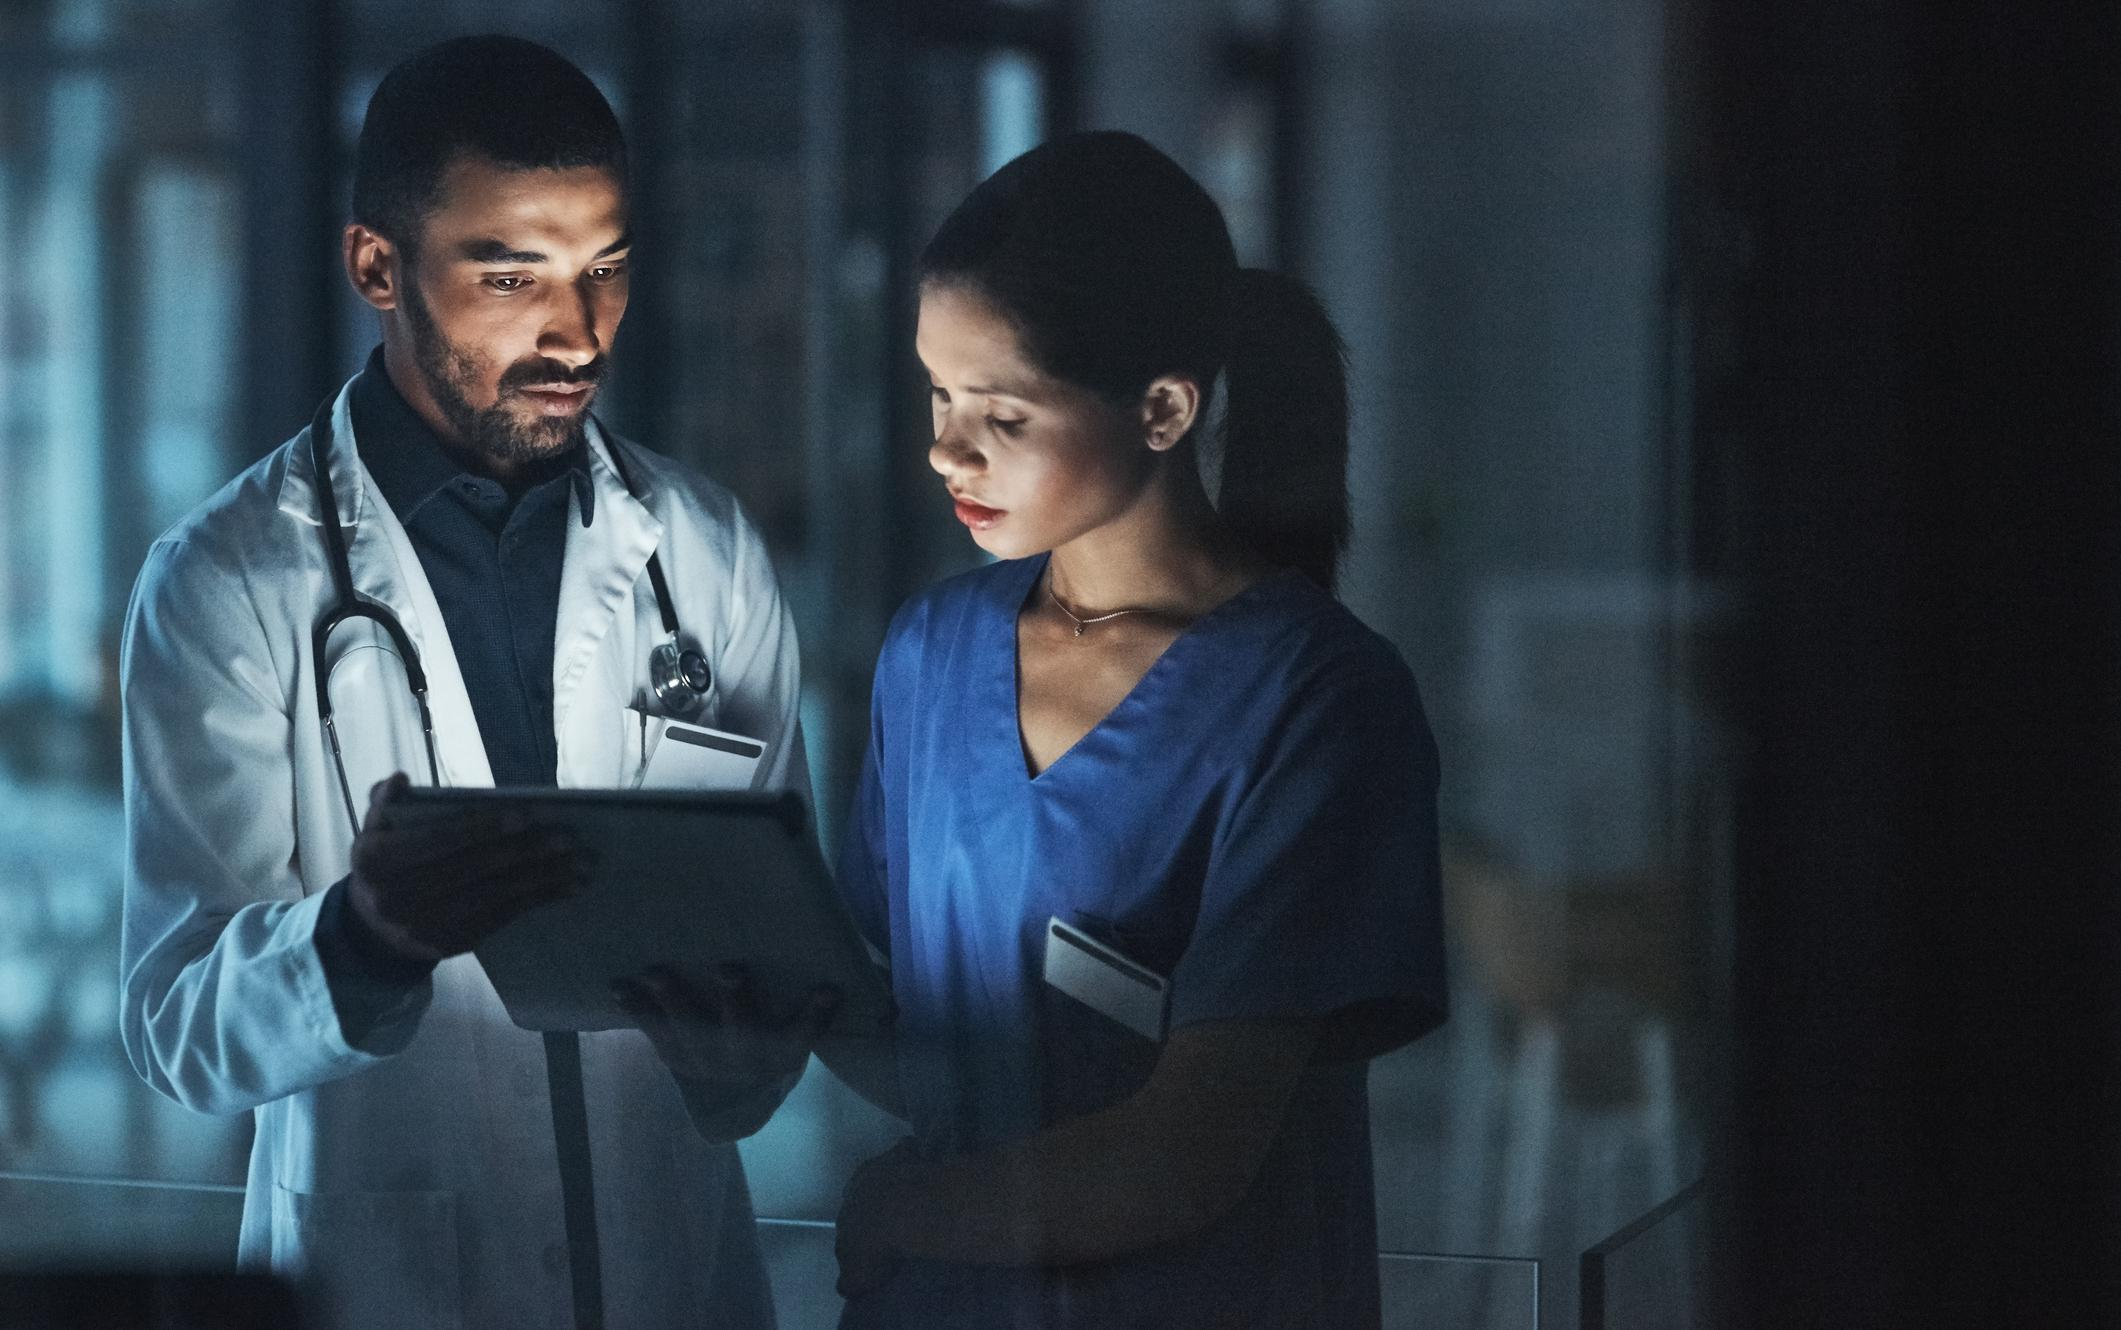 Shot of two young doctors using a digital tablet late at night in a modern hospital